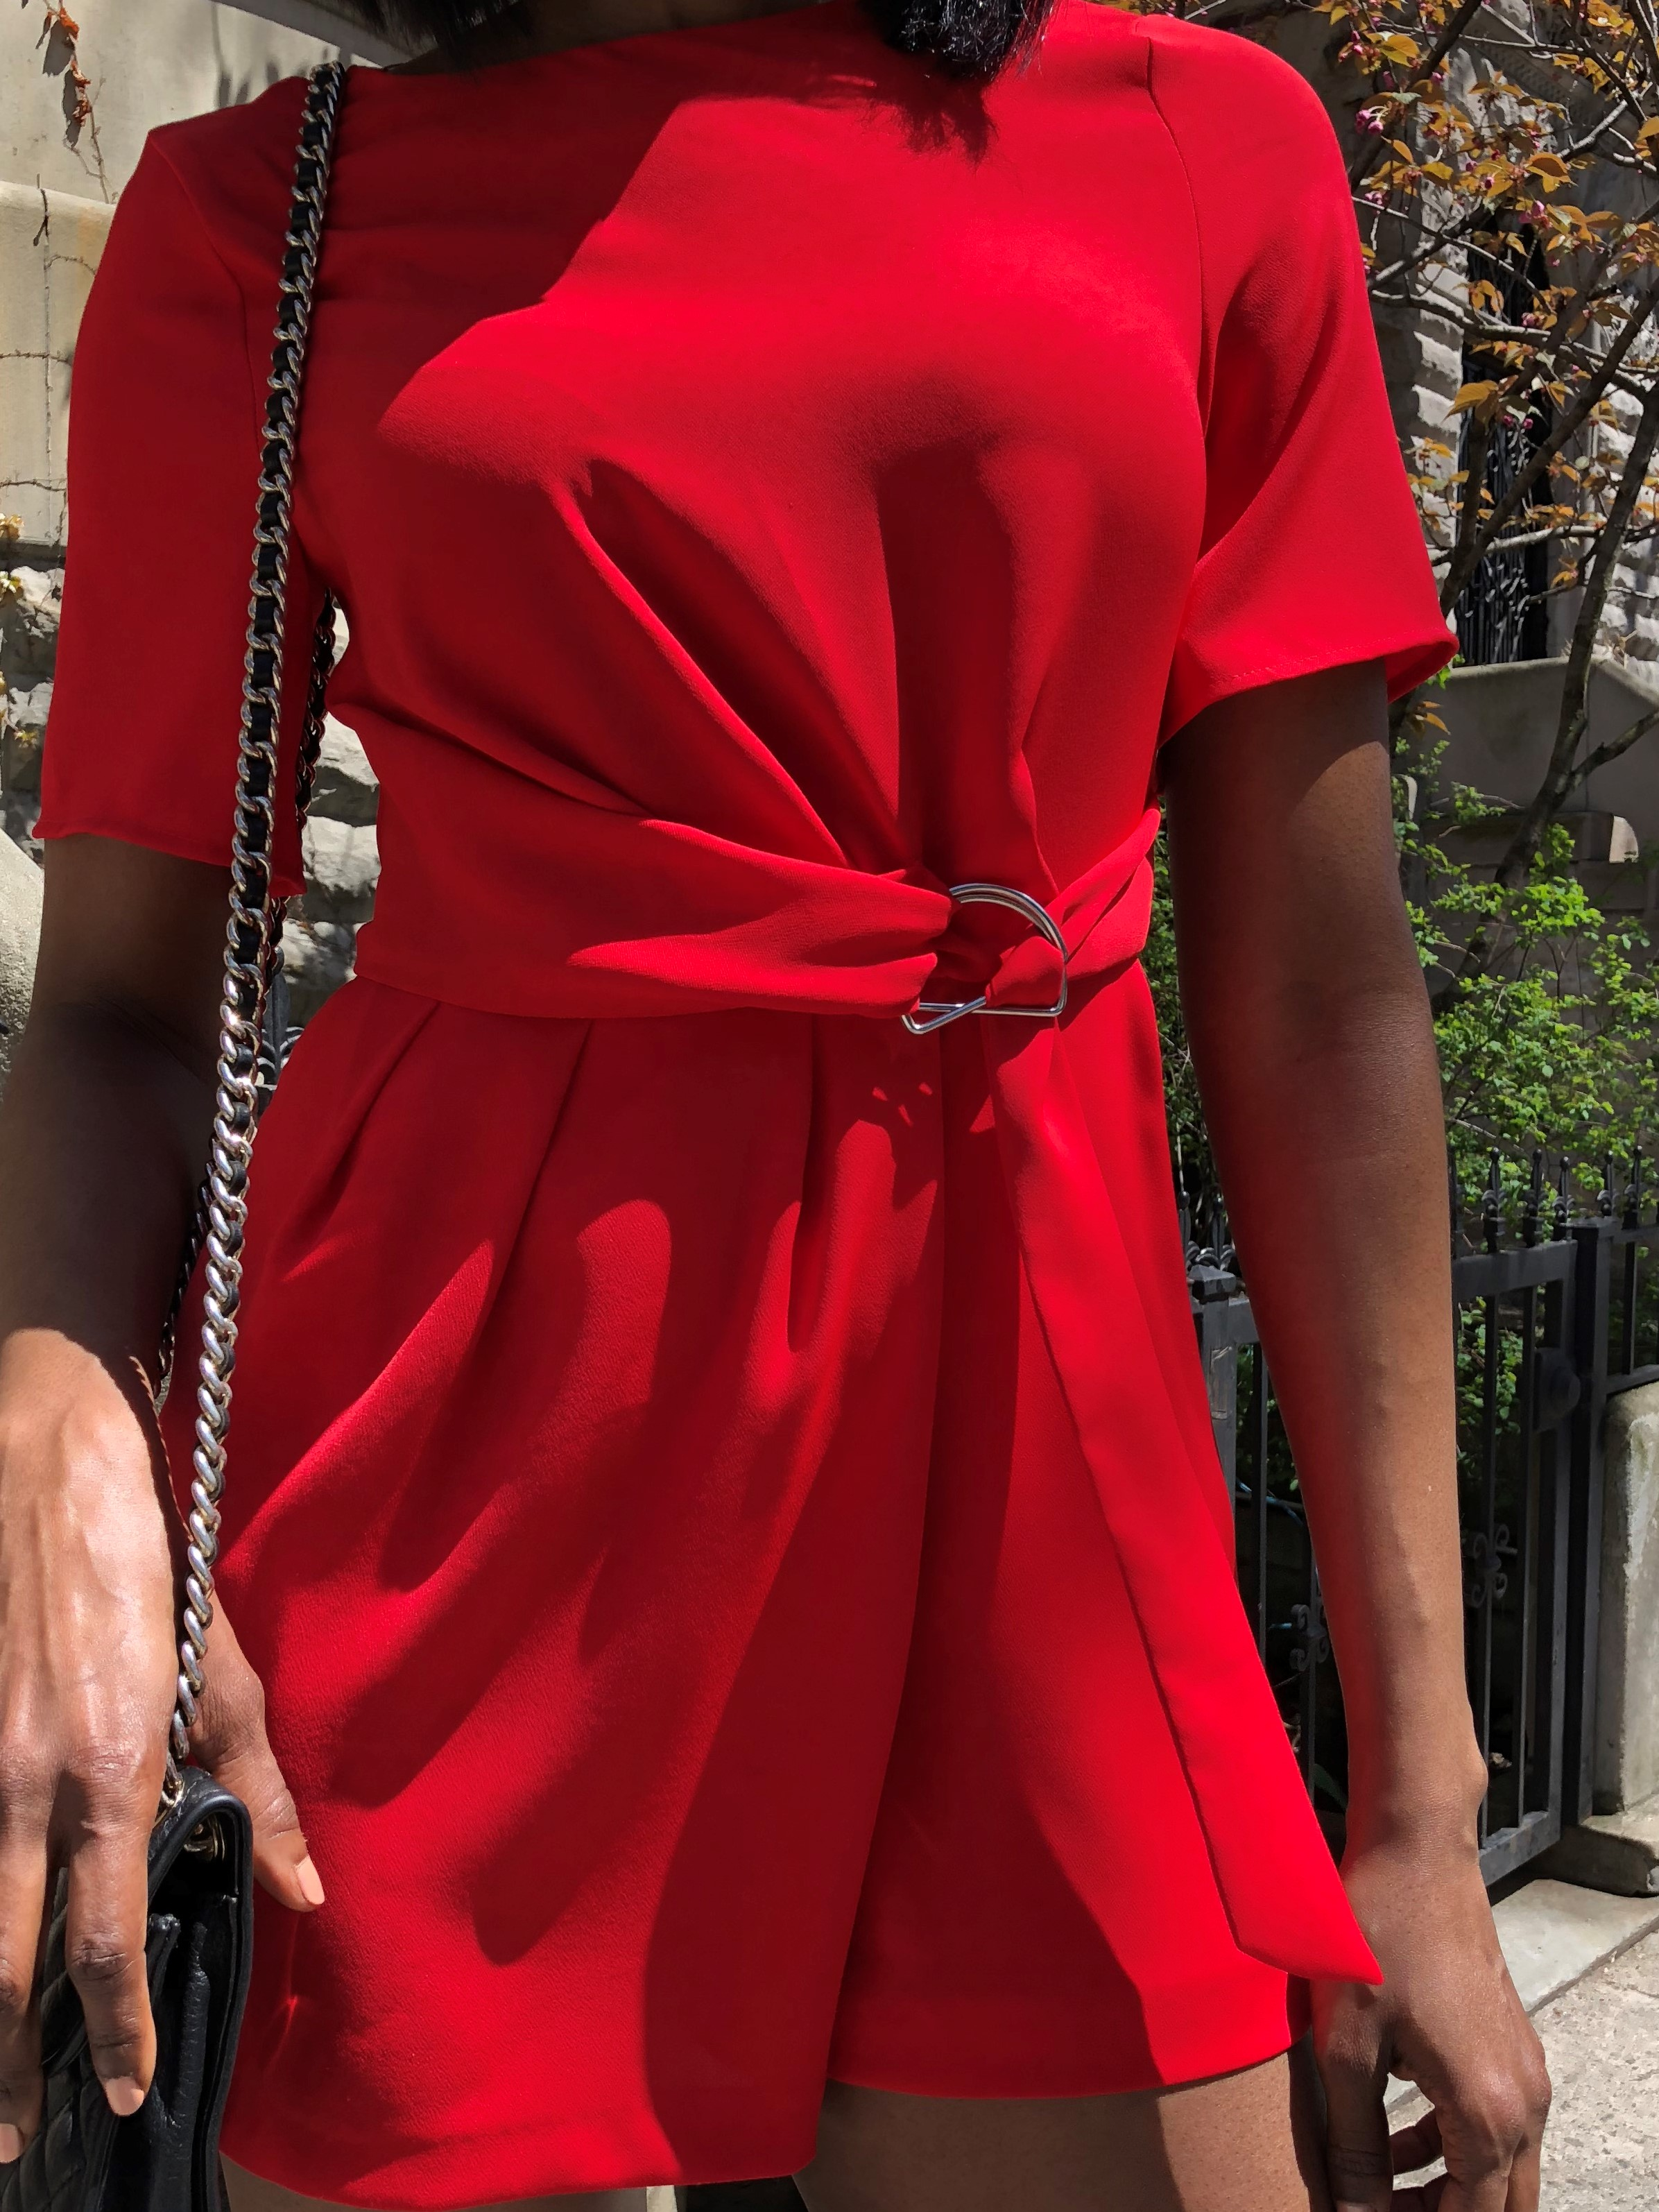 Red romper with pockets, silver hardware and tie